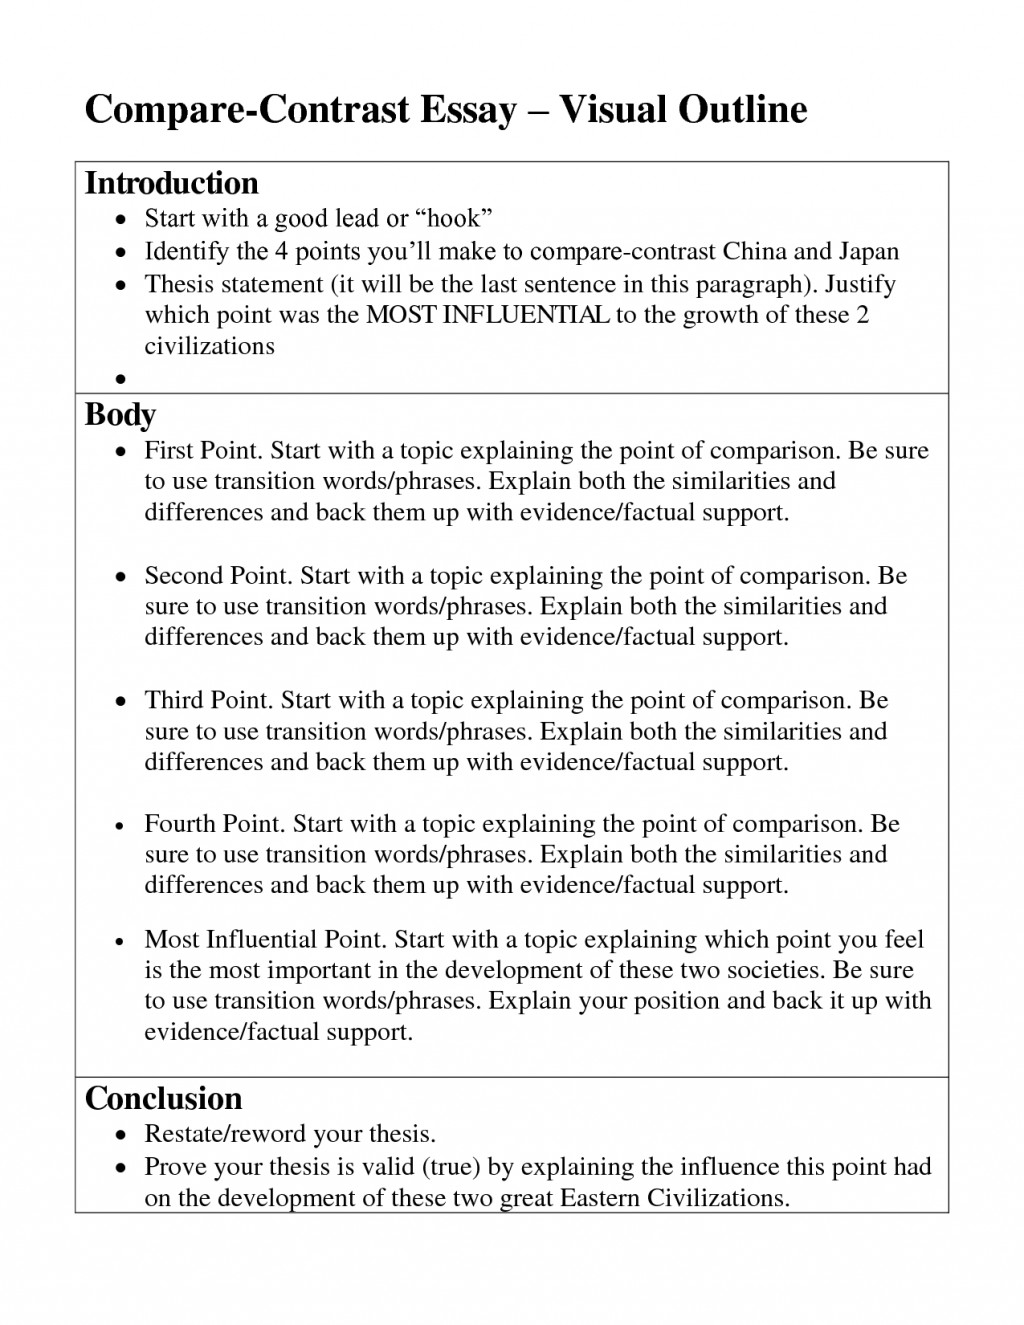 005 Essay Example Compare And Contrast Ideas Unforgettable For 5th Grade Funny Title Large